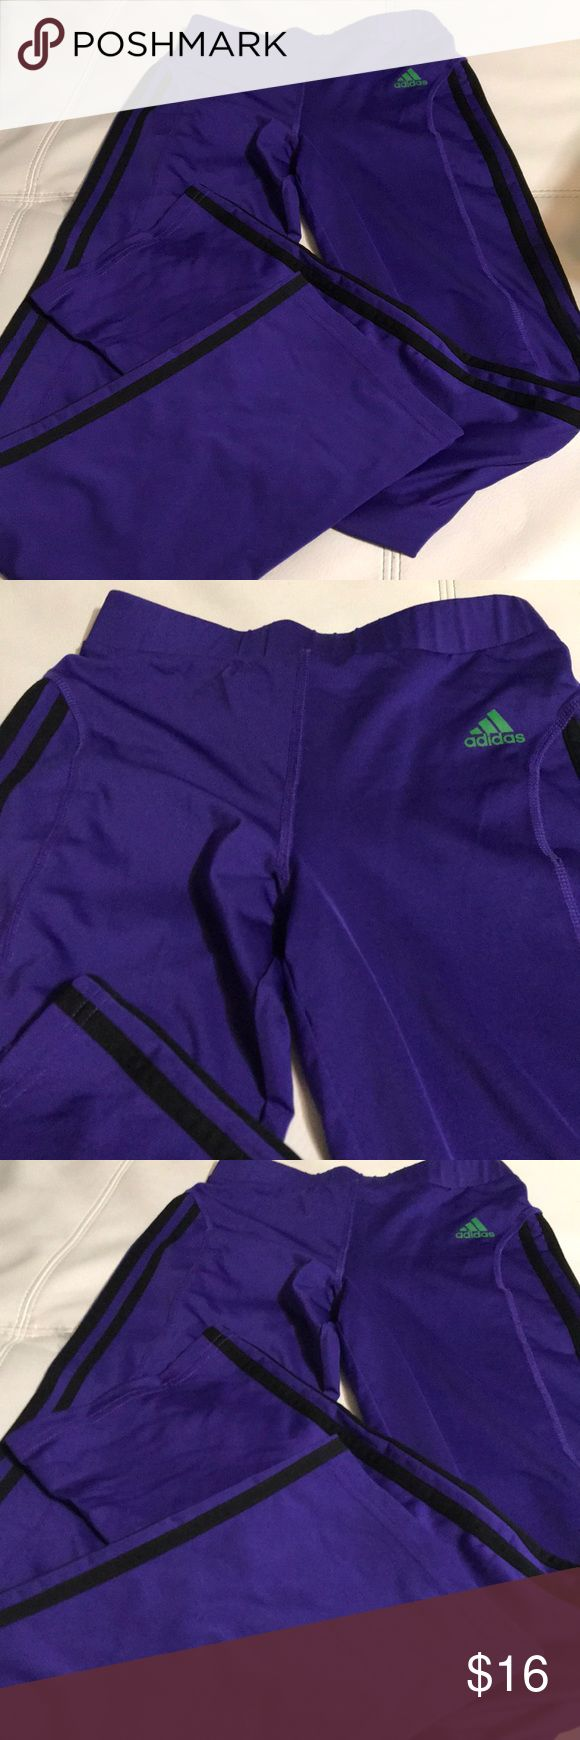 ADIDAS GIRL YOGA PANTS Beautiful pants in perfect condition, made of polyester and spandex adidas Bottoms Sweatpants & Joggers